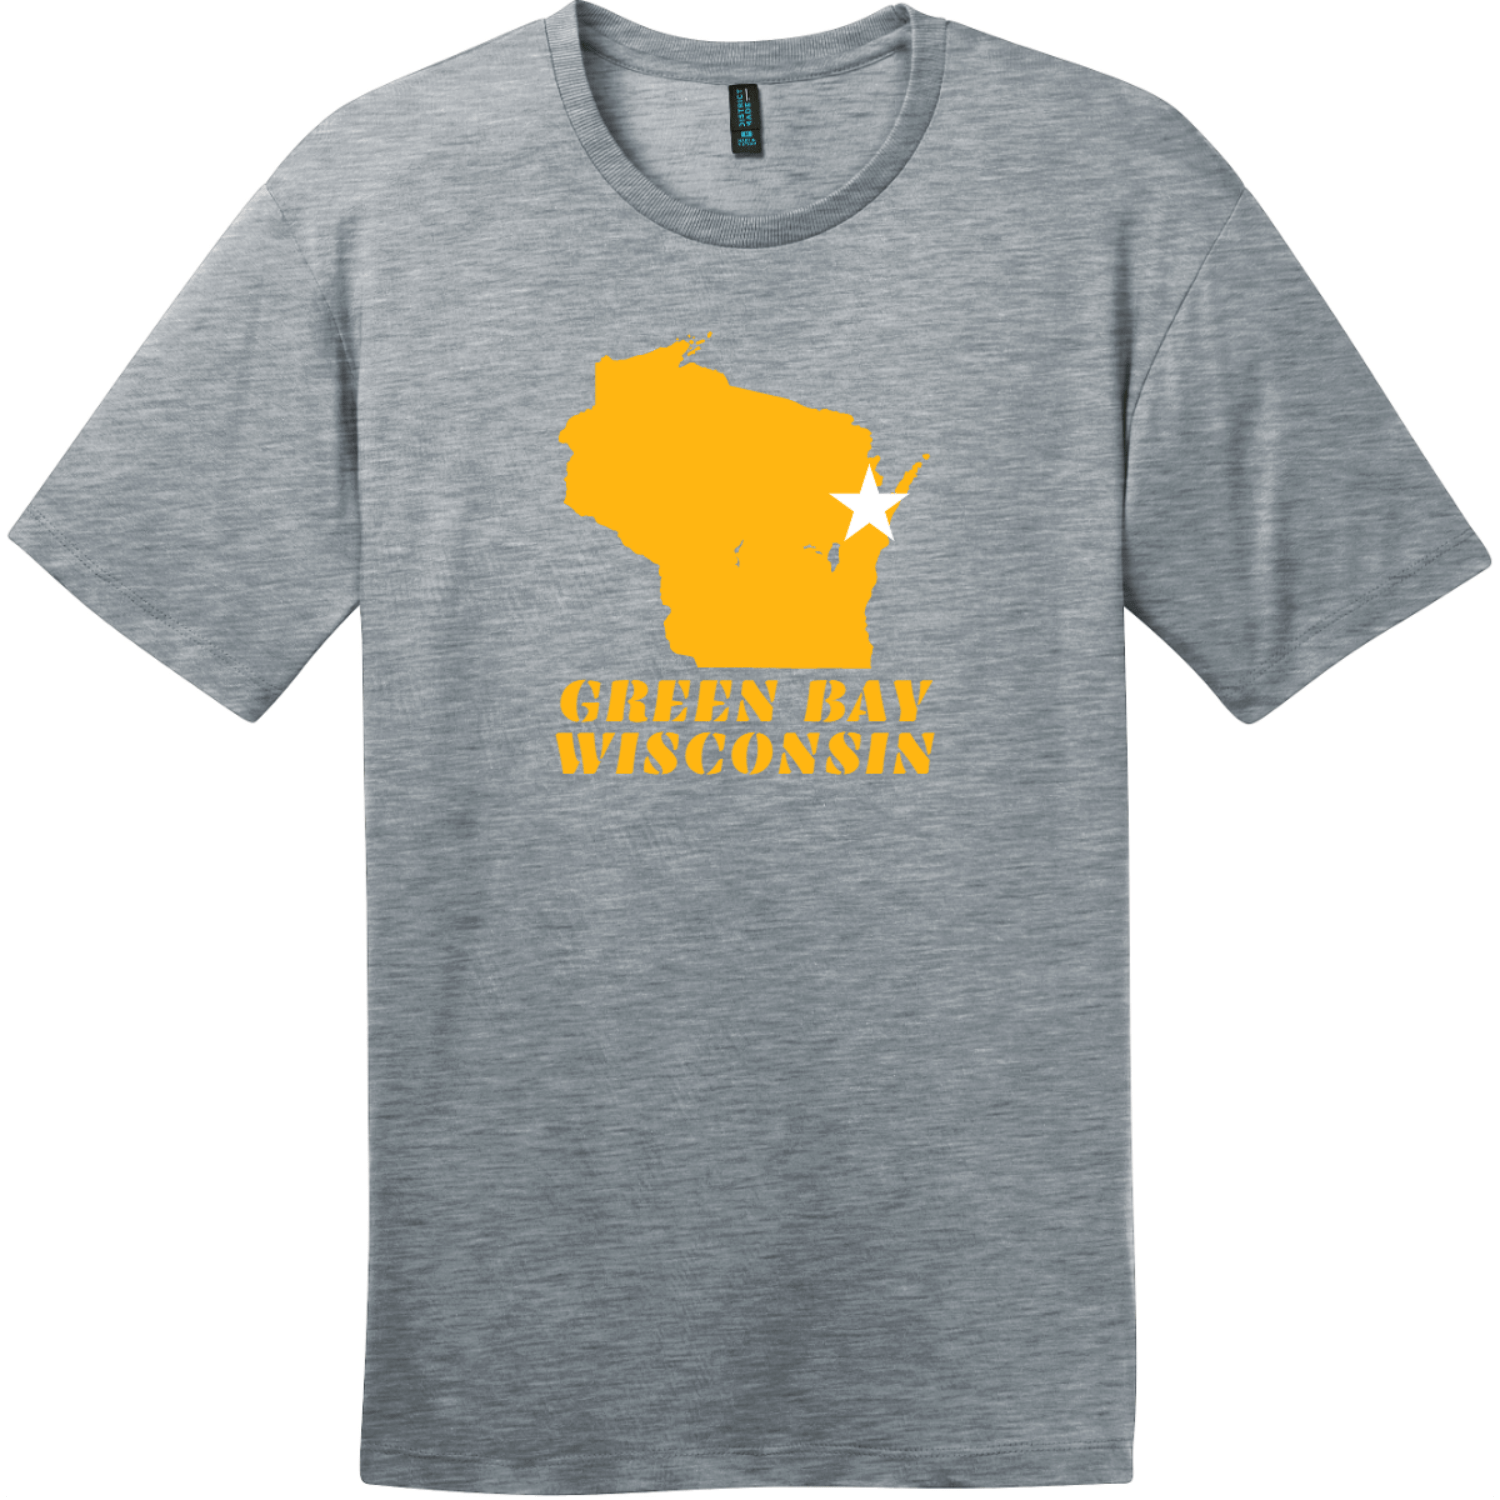 Green Bay Wisconsin State Retro T-Shirt Heathered Steel District Perfect Weight Tee DT104